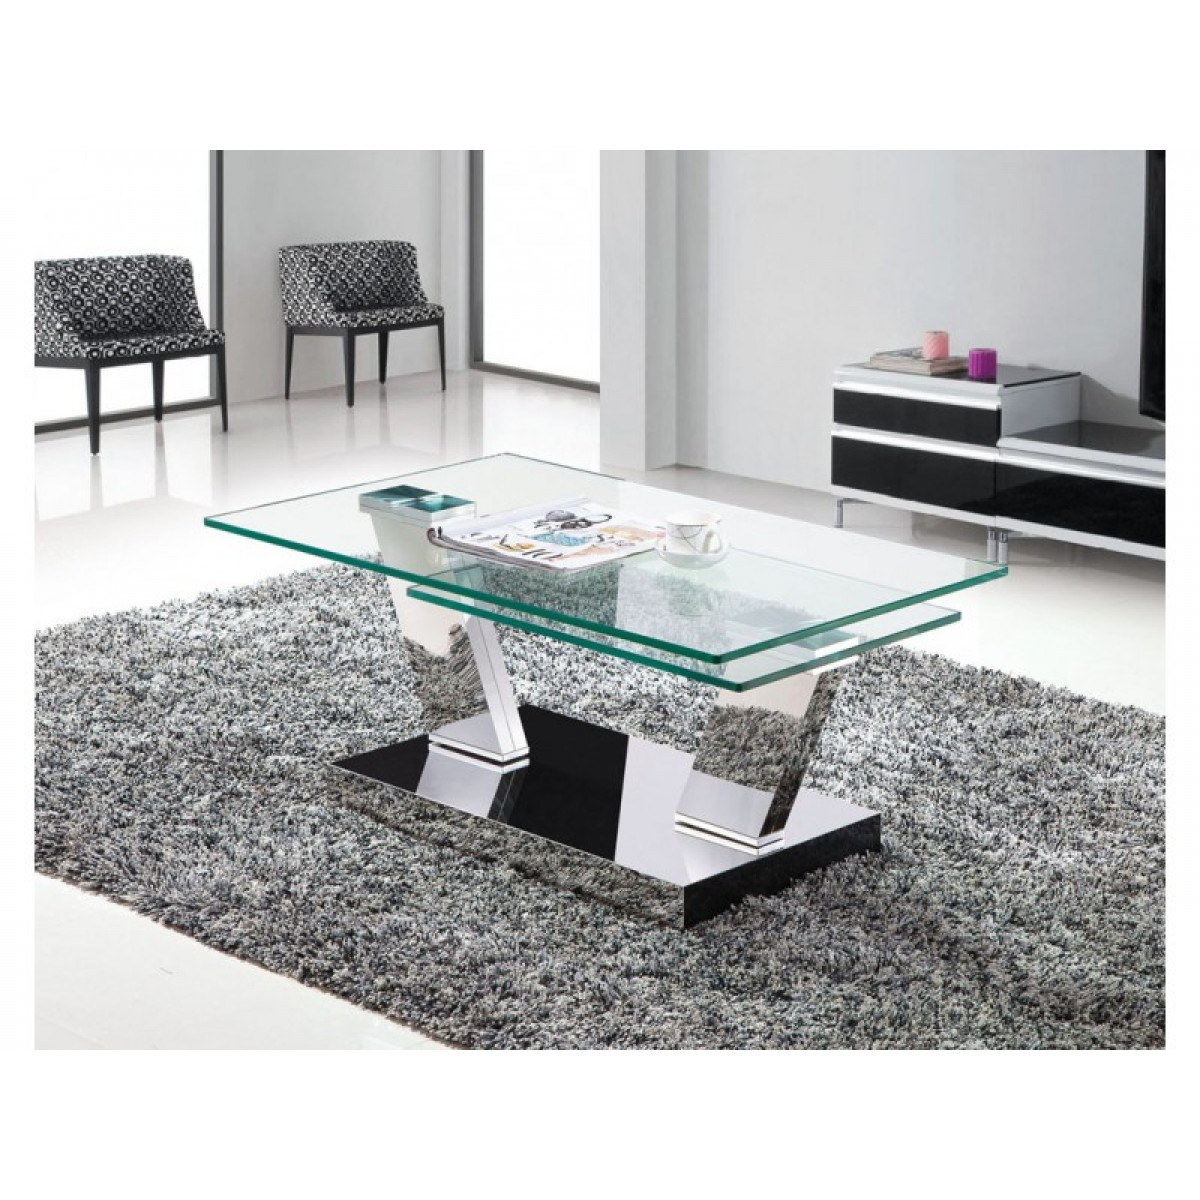 Table basse double plateaux transparents carr s chrom s - Table basse contemporaine design ...